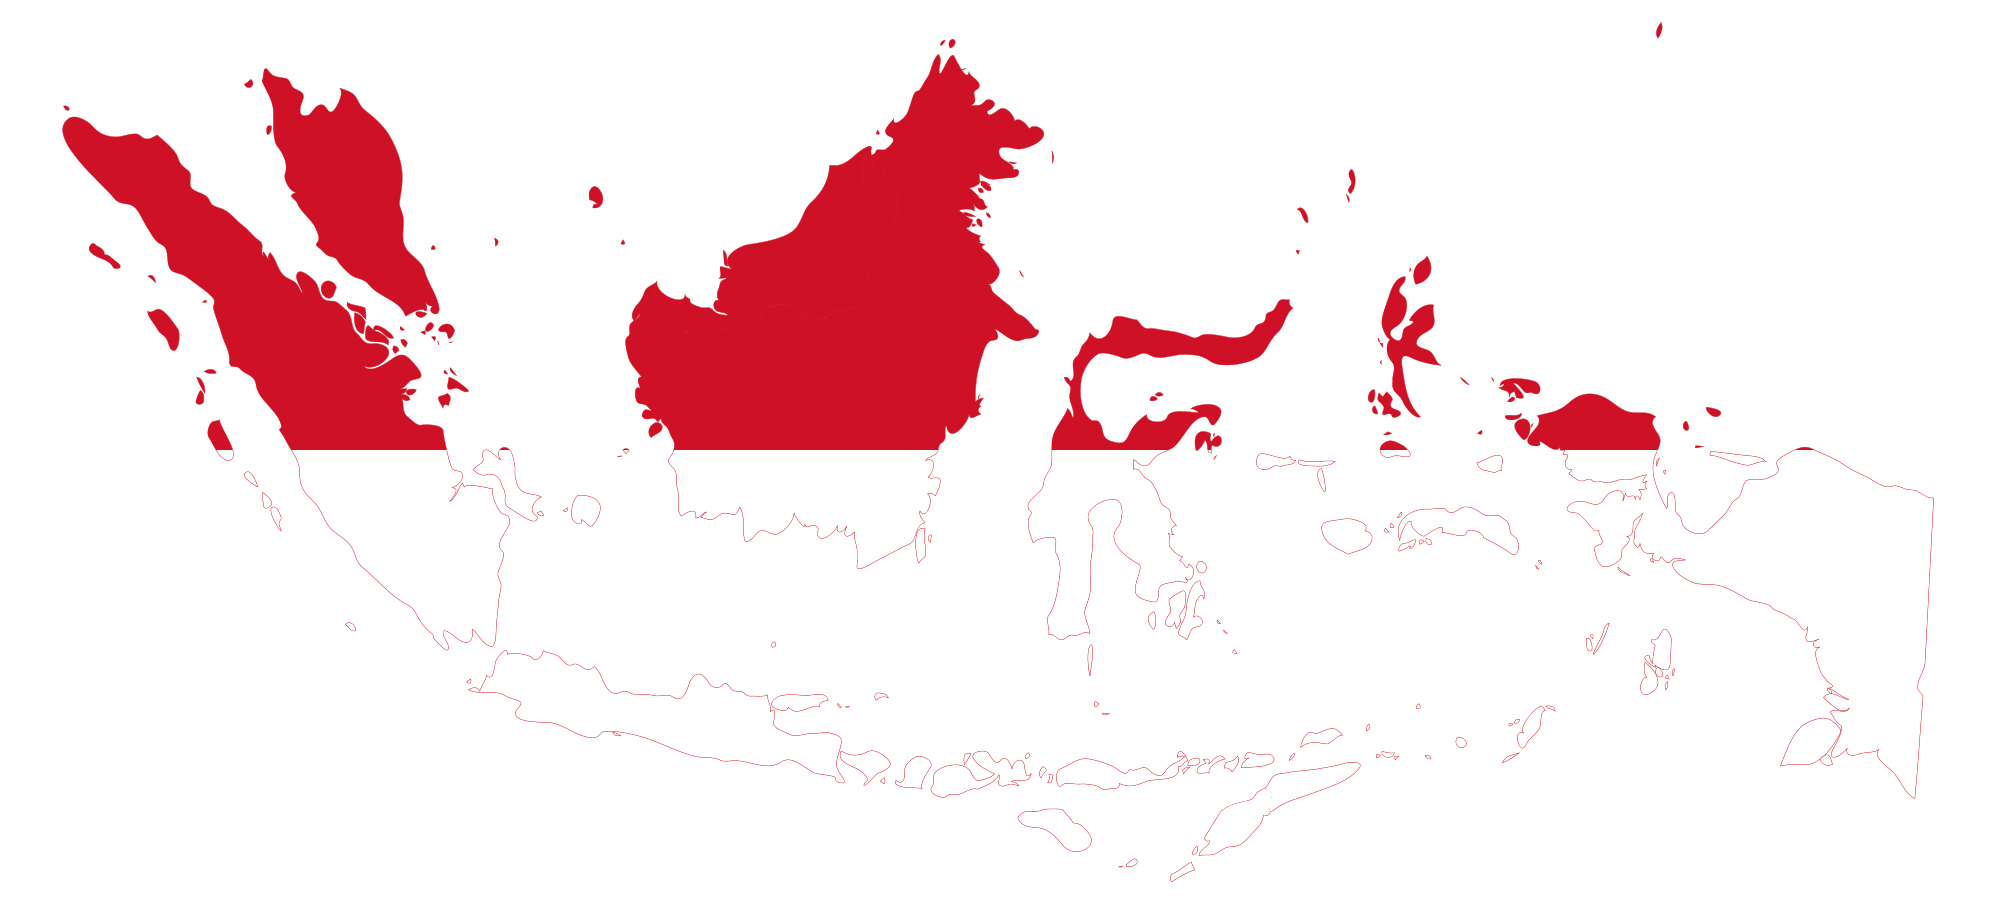 Indonesia svg #12, Download drawings